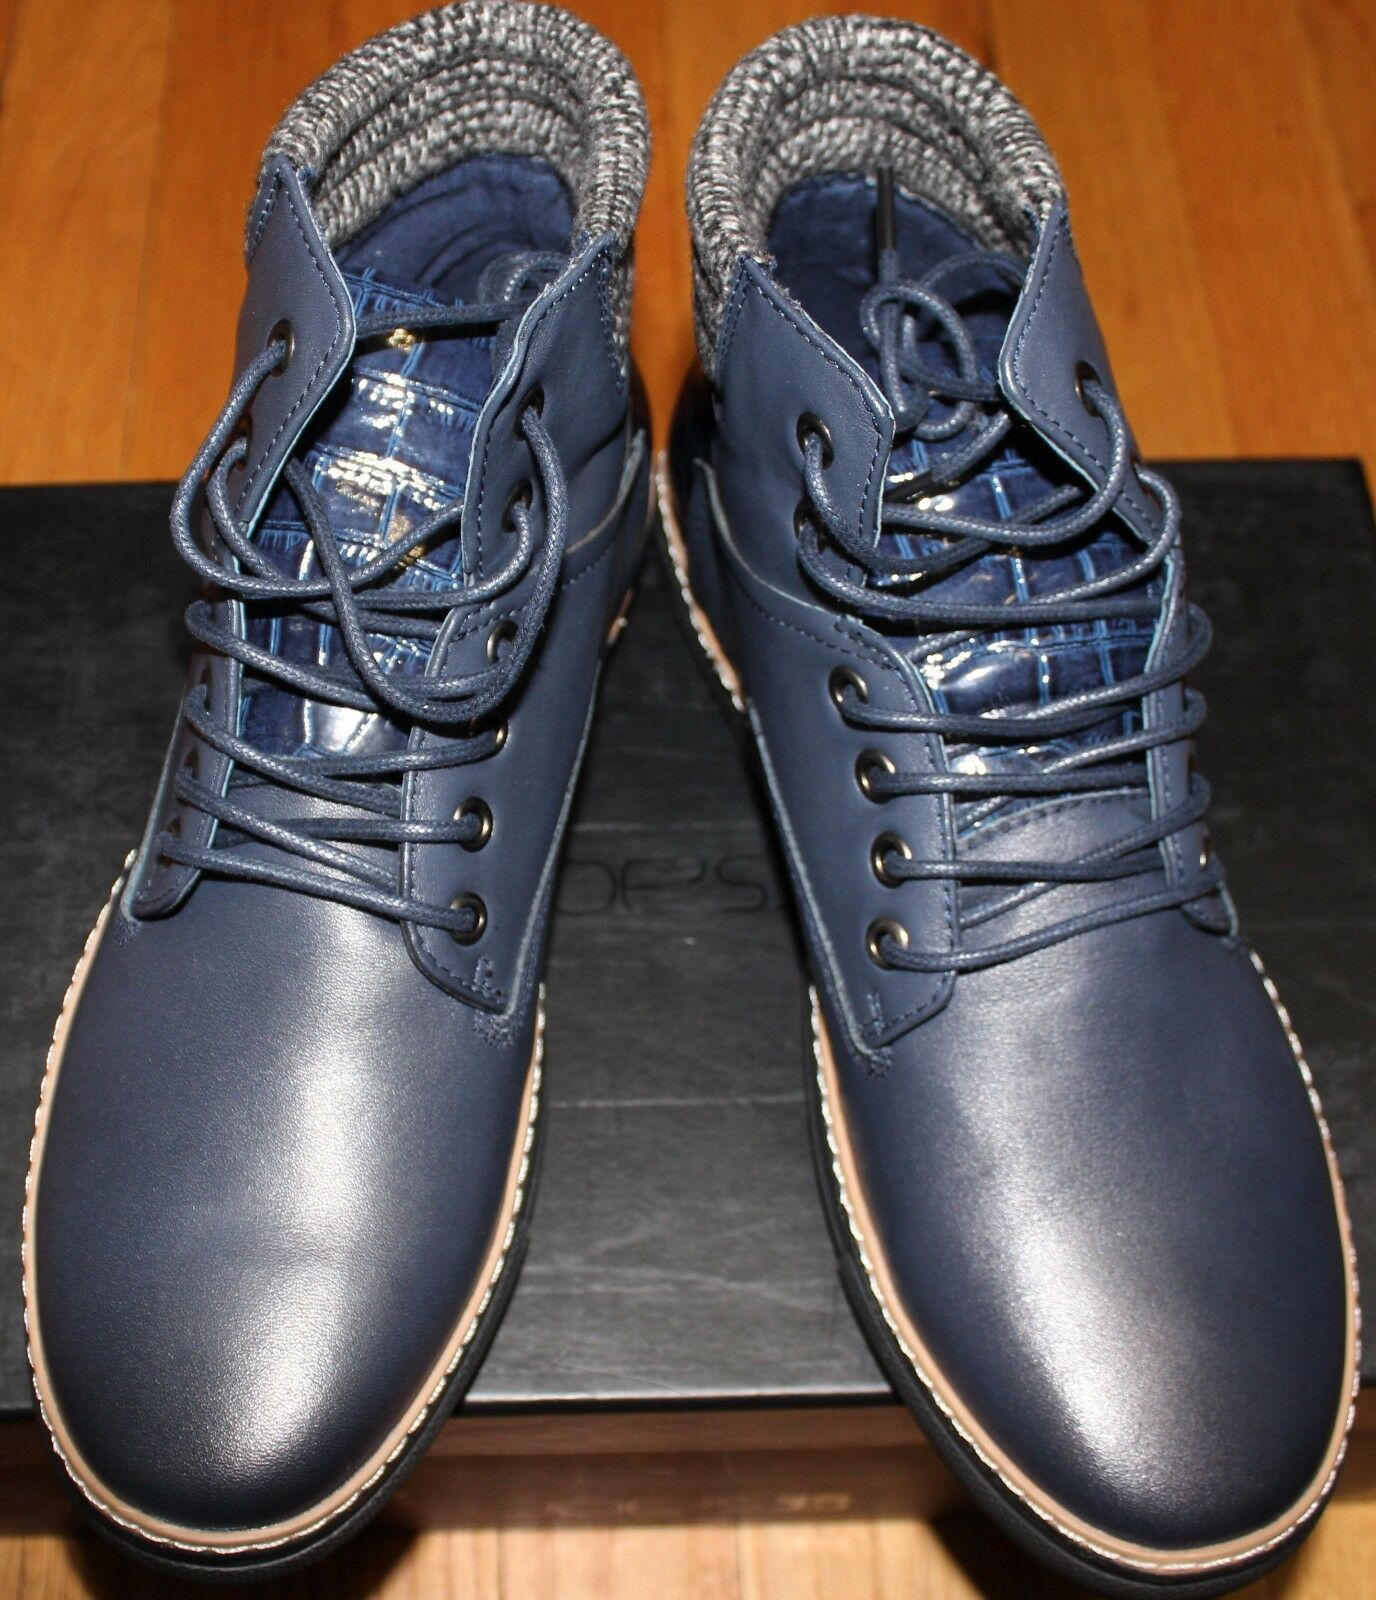 185 JOES JEANS BENNY NAVY LEATHER HIGH TOP SNEAKER SZ 8